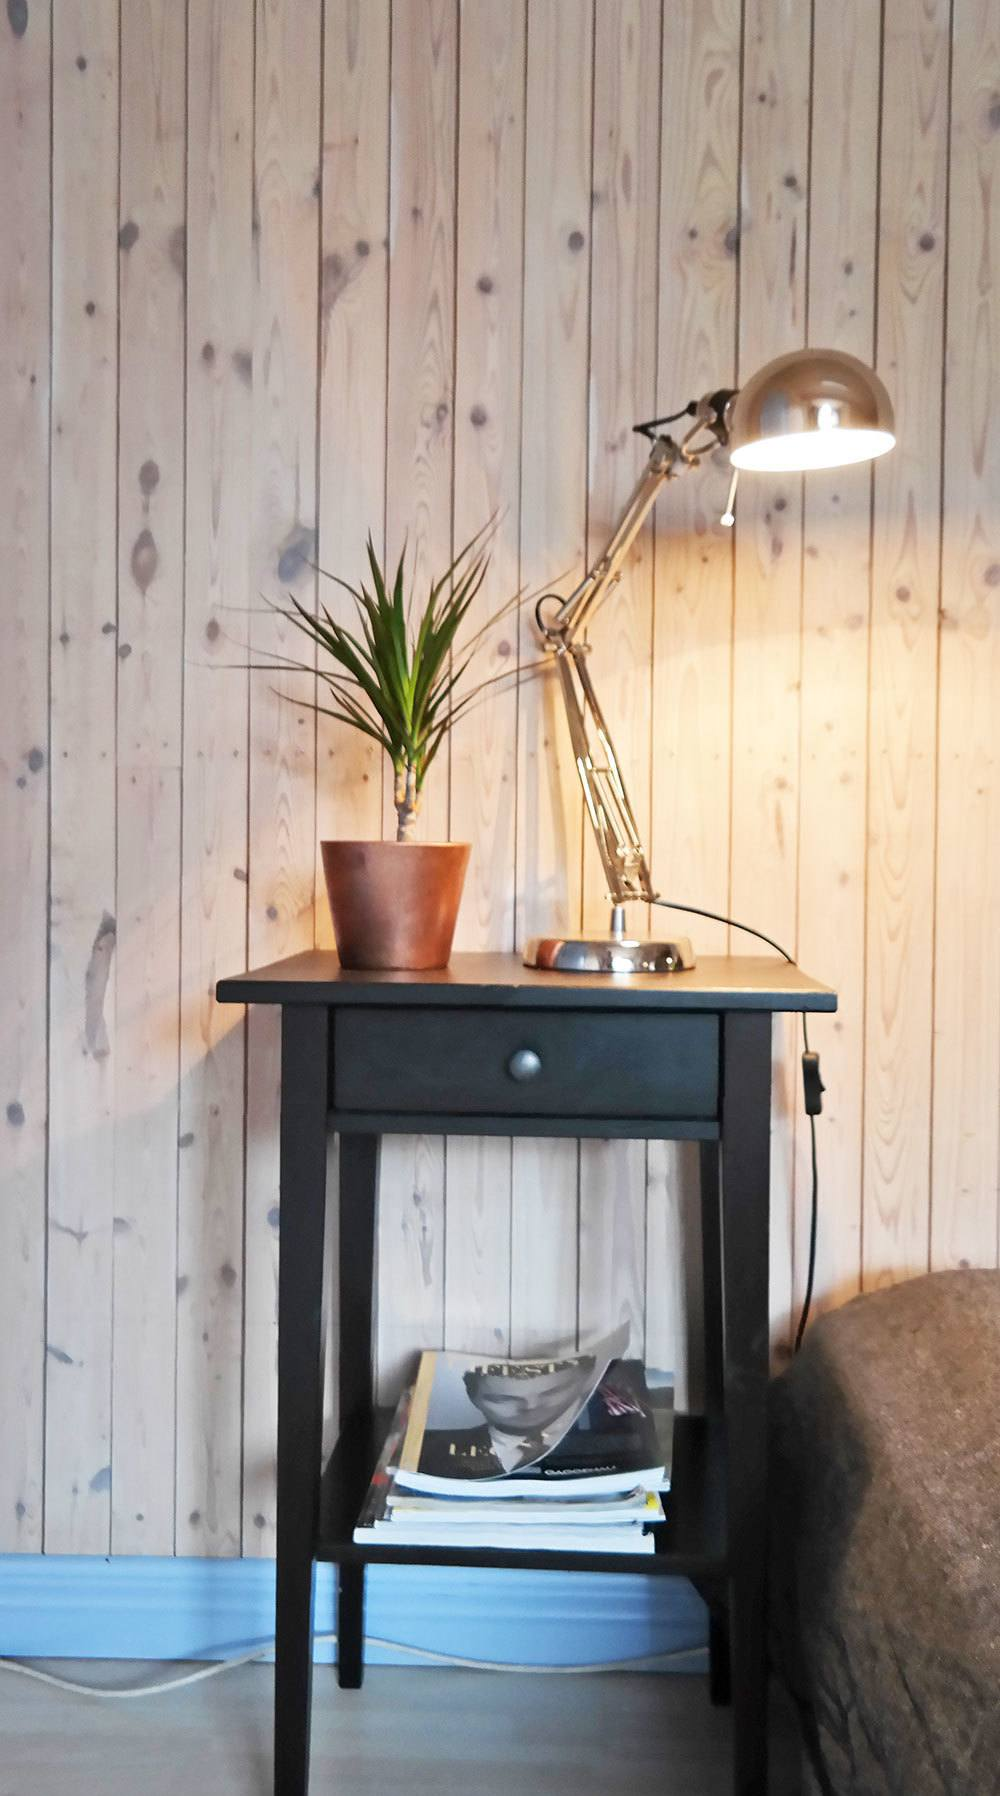 IKEA side table and lamp